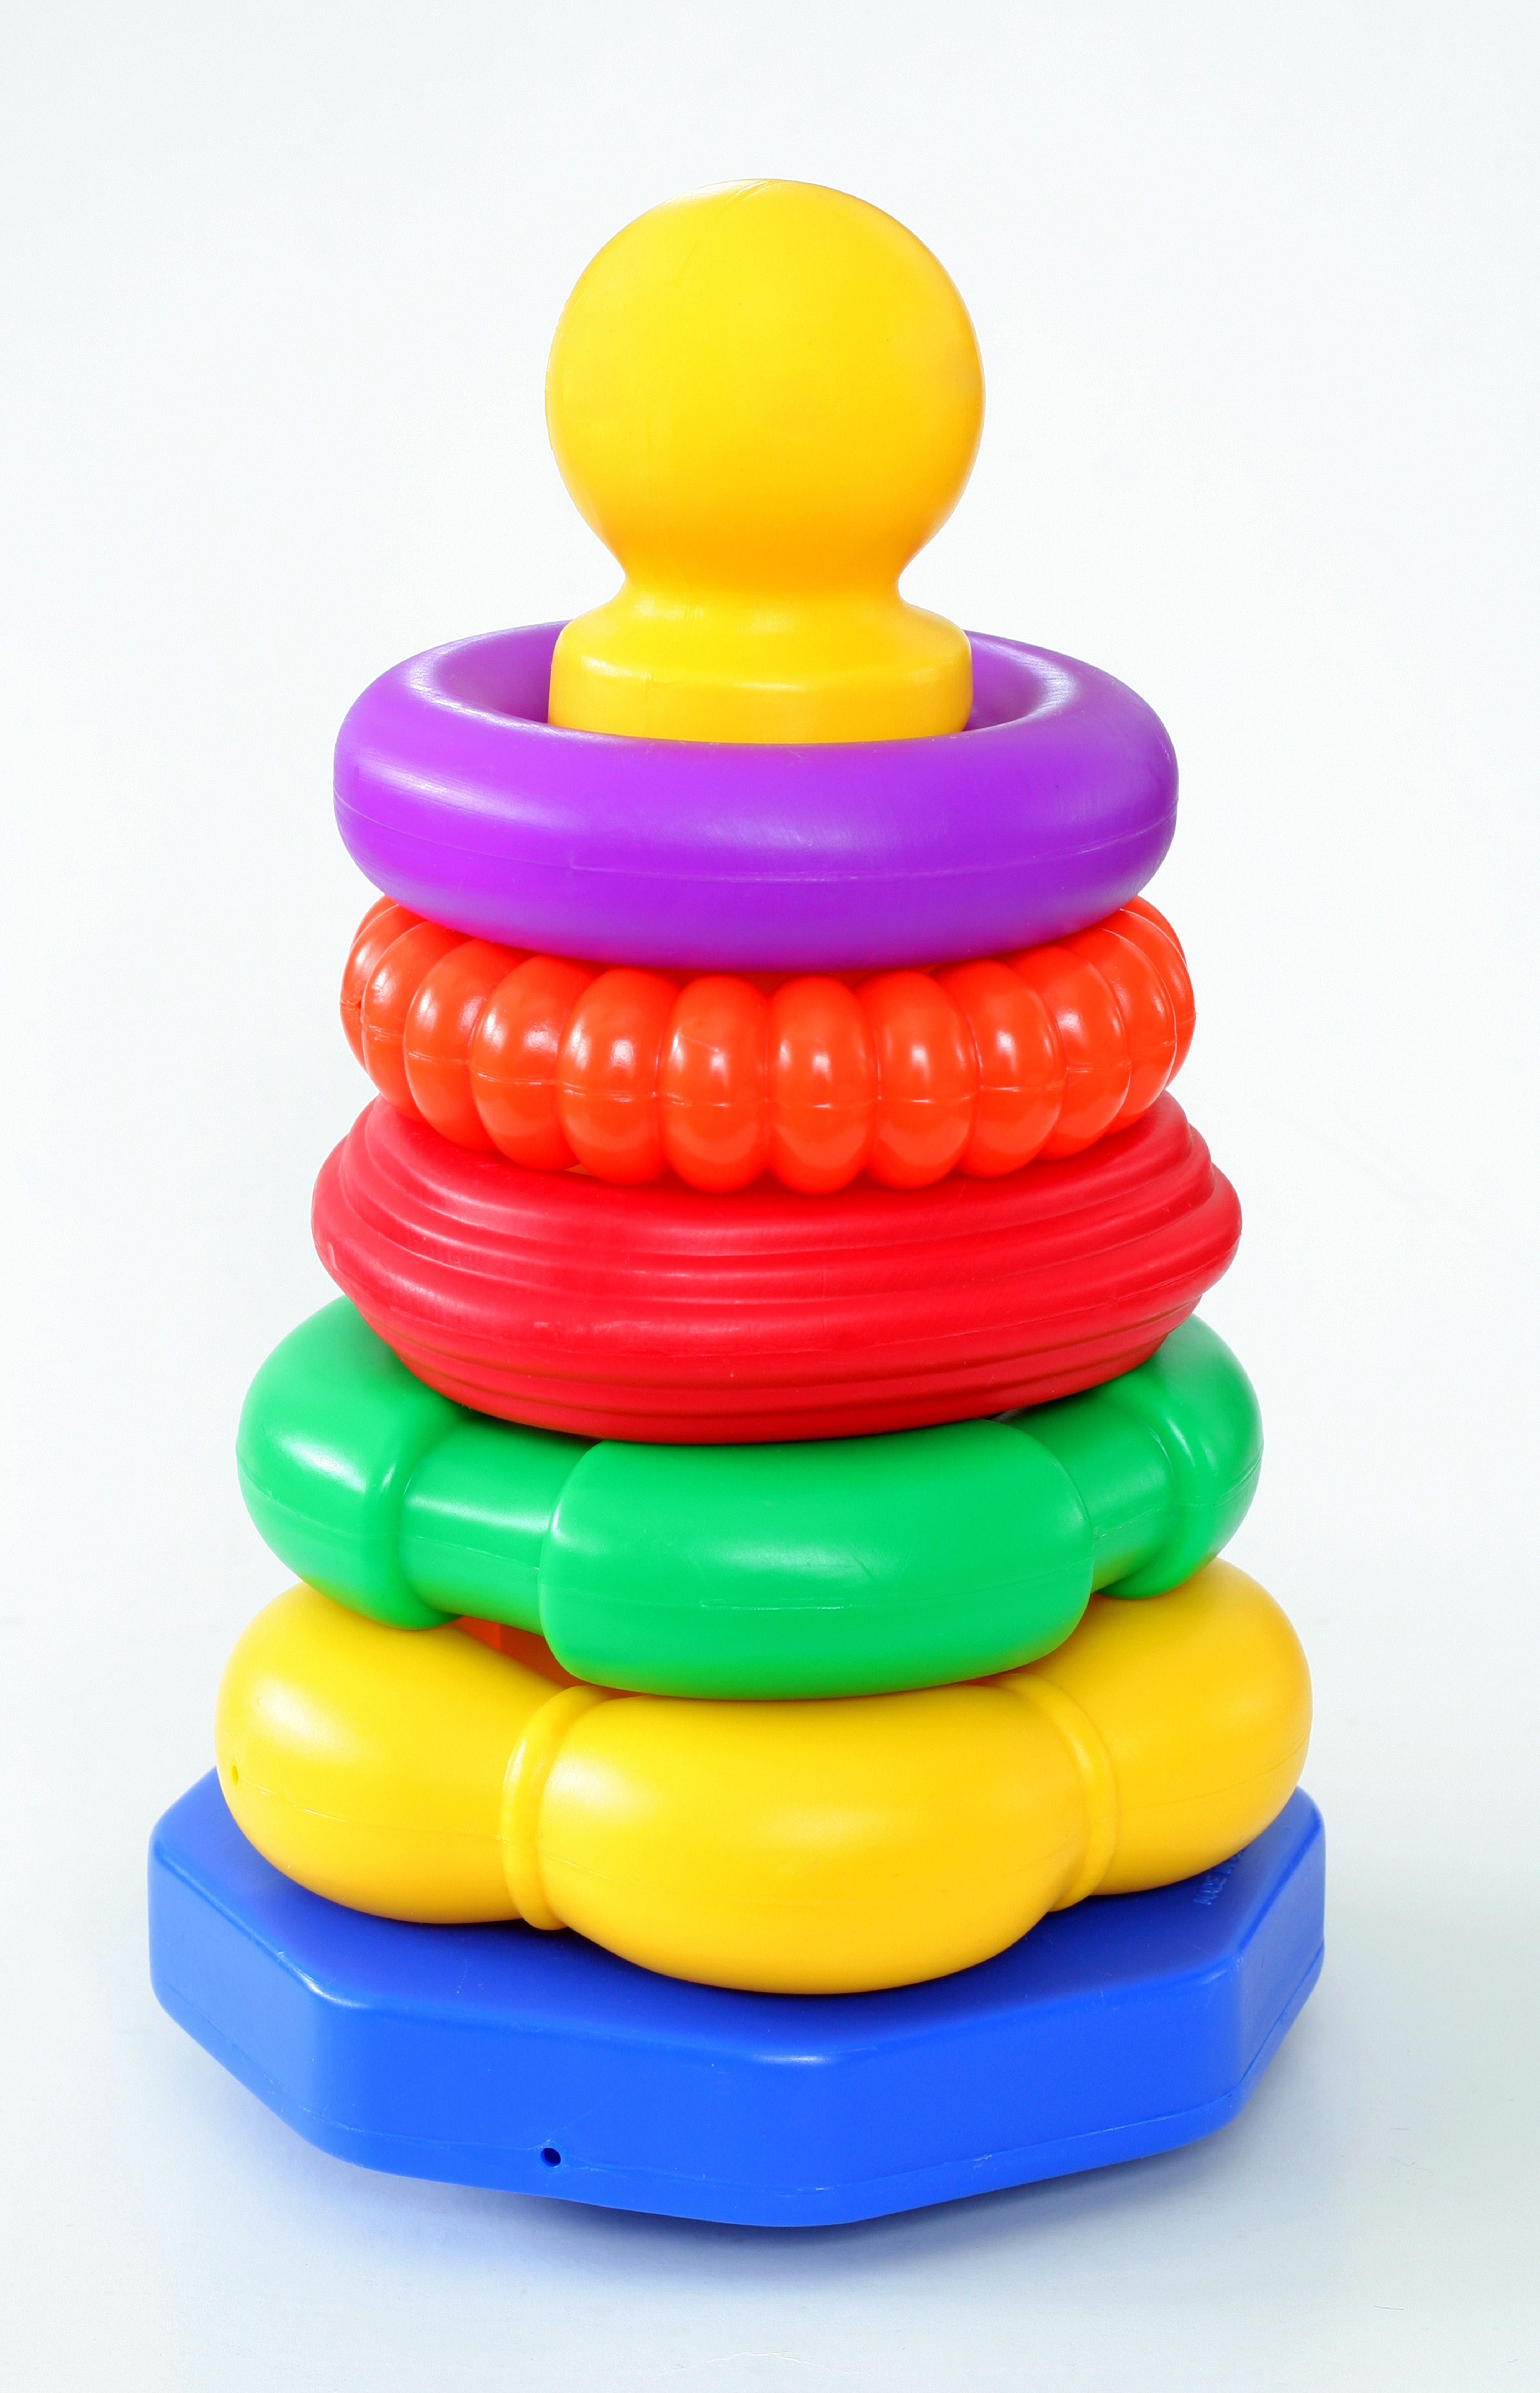 Toys For Children Up To And Including 36 Months Of Age Product